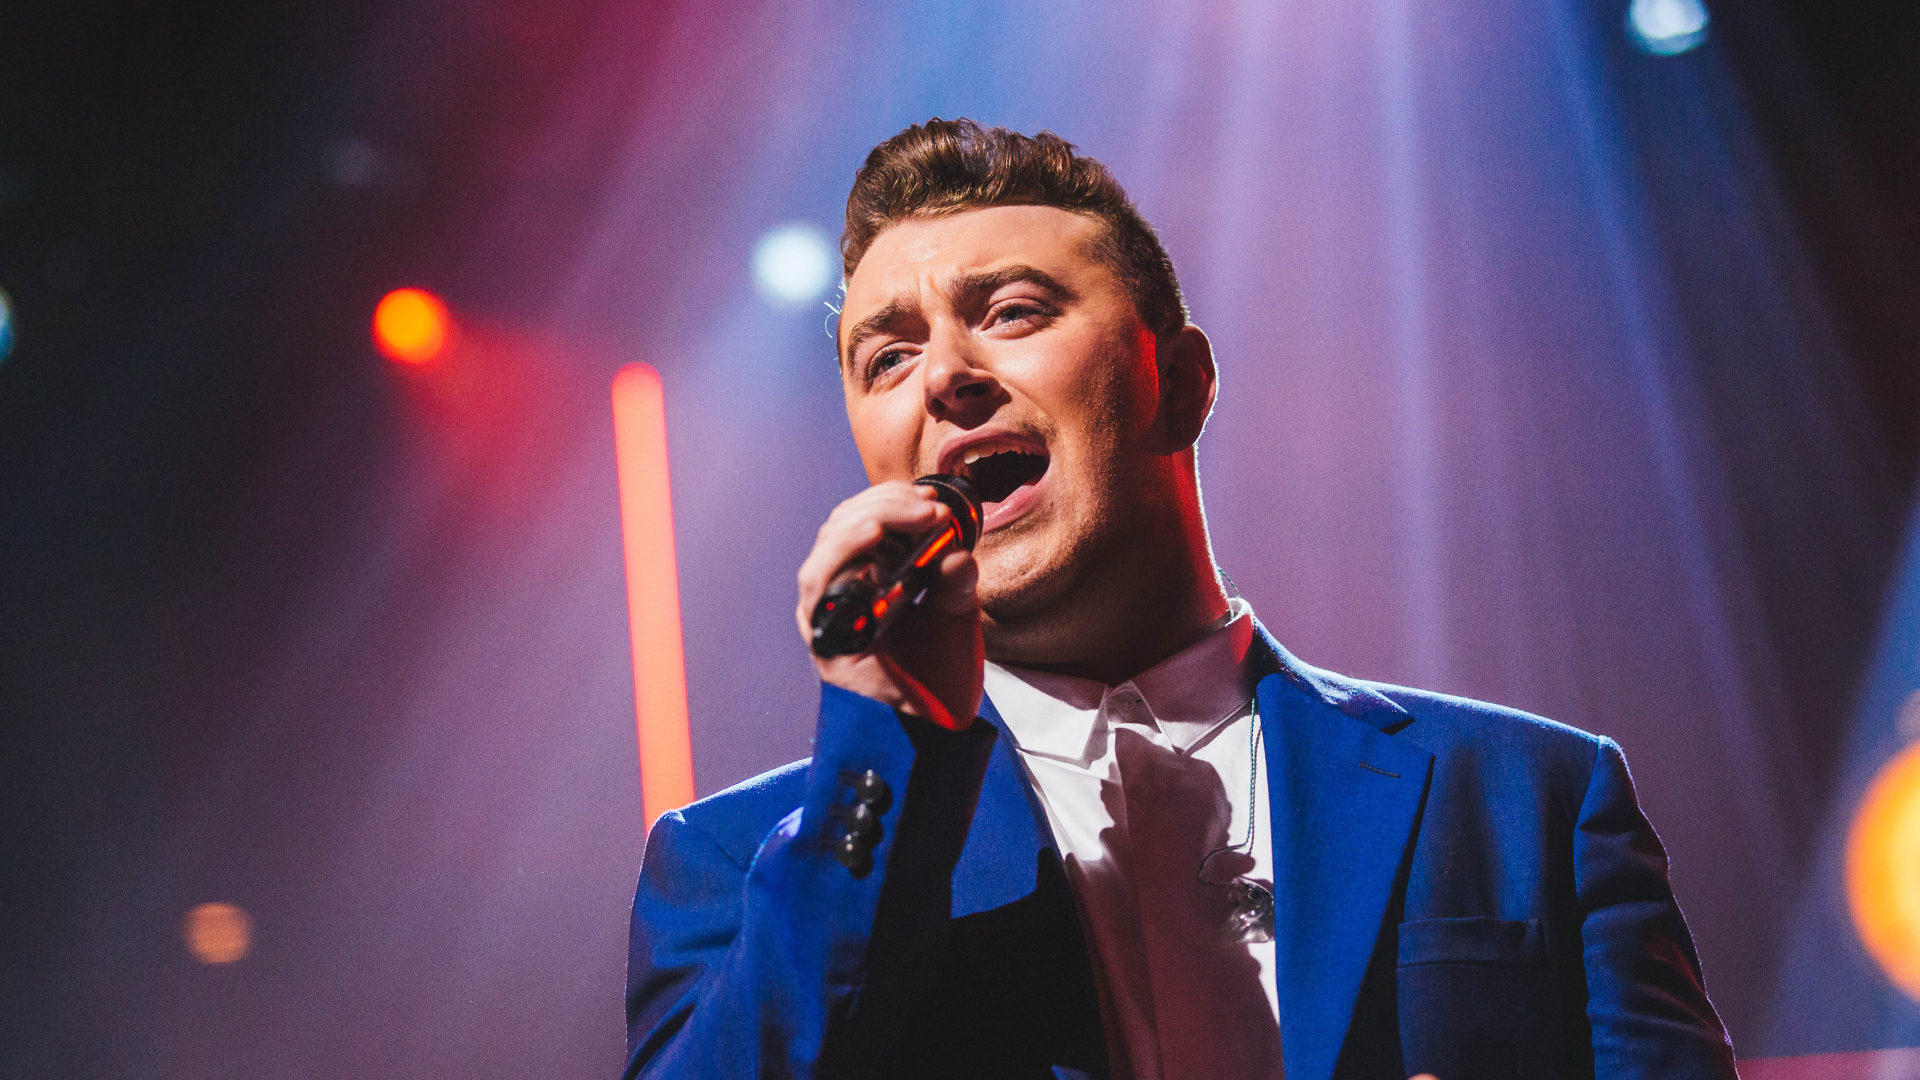 sam smith performing hd wallpaper 62210